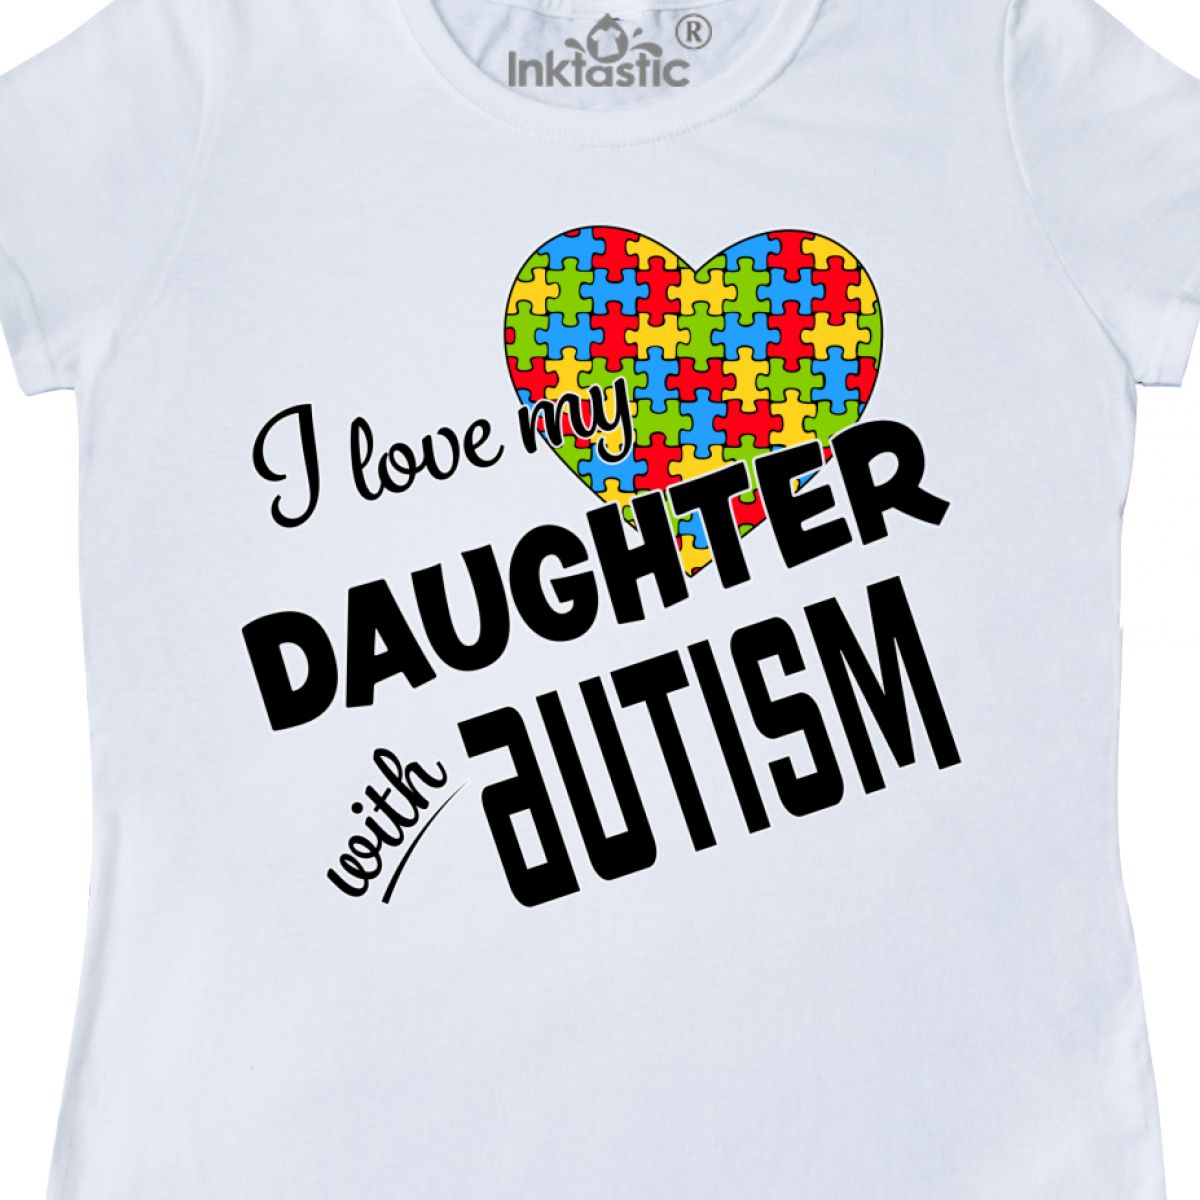 03742c9e Inktastic I Love My Daughter With Autism Women's T-Shirt Awareness ...